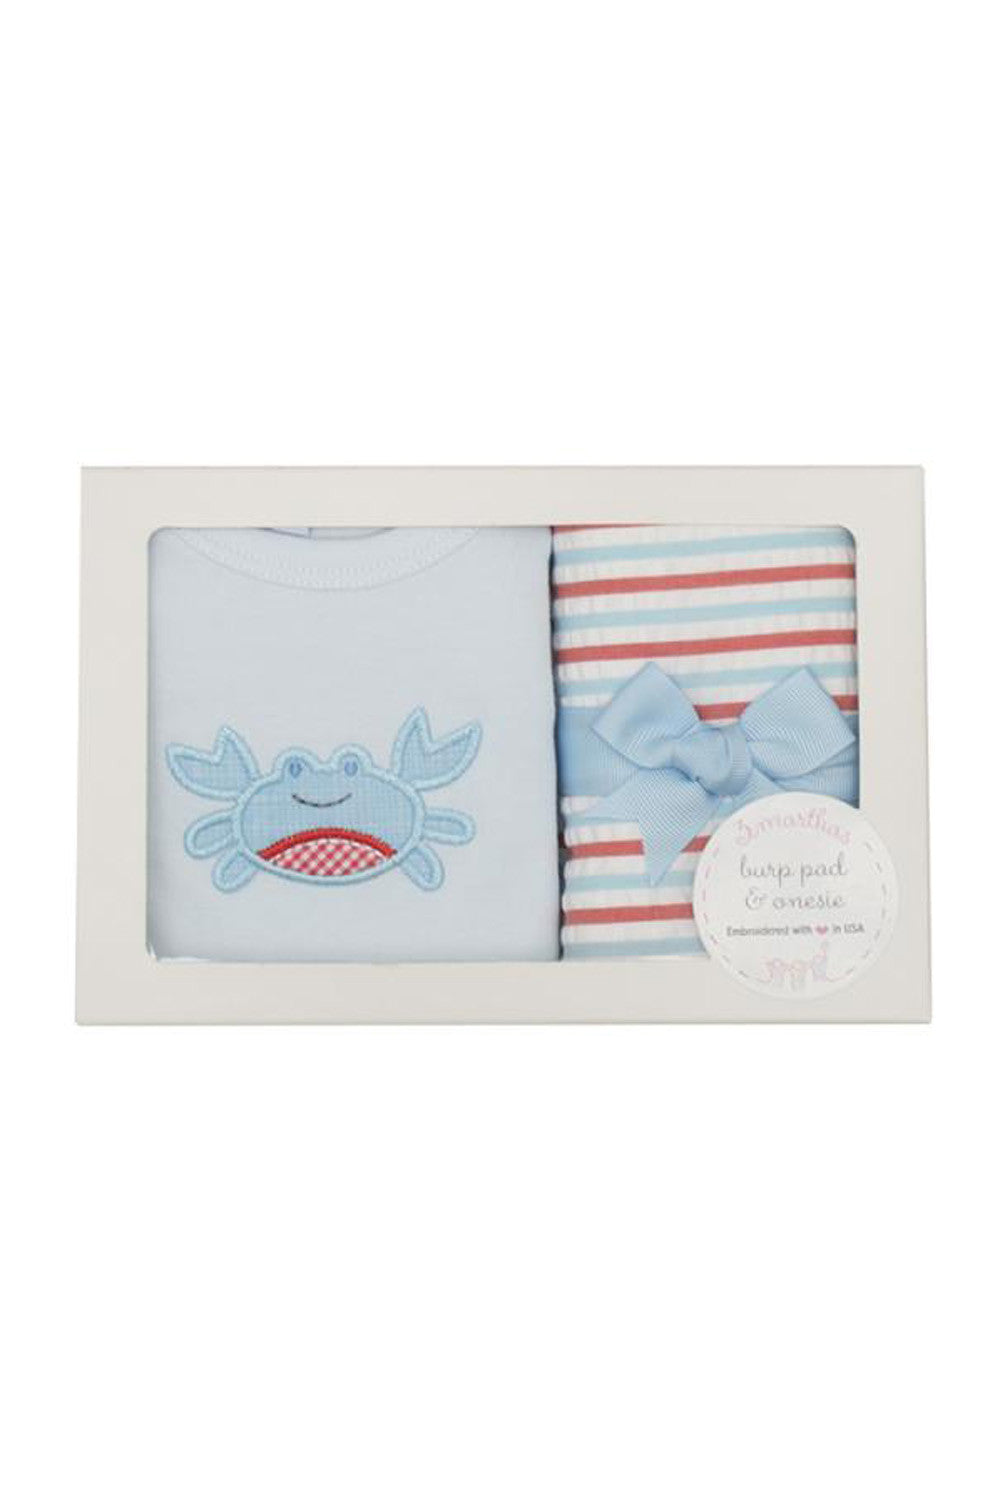 Boxed Burp Pad & Onesie Set - Crab